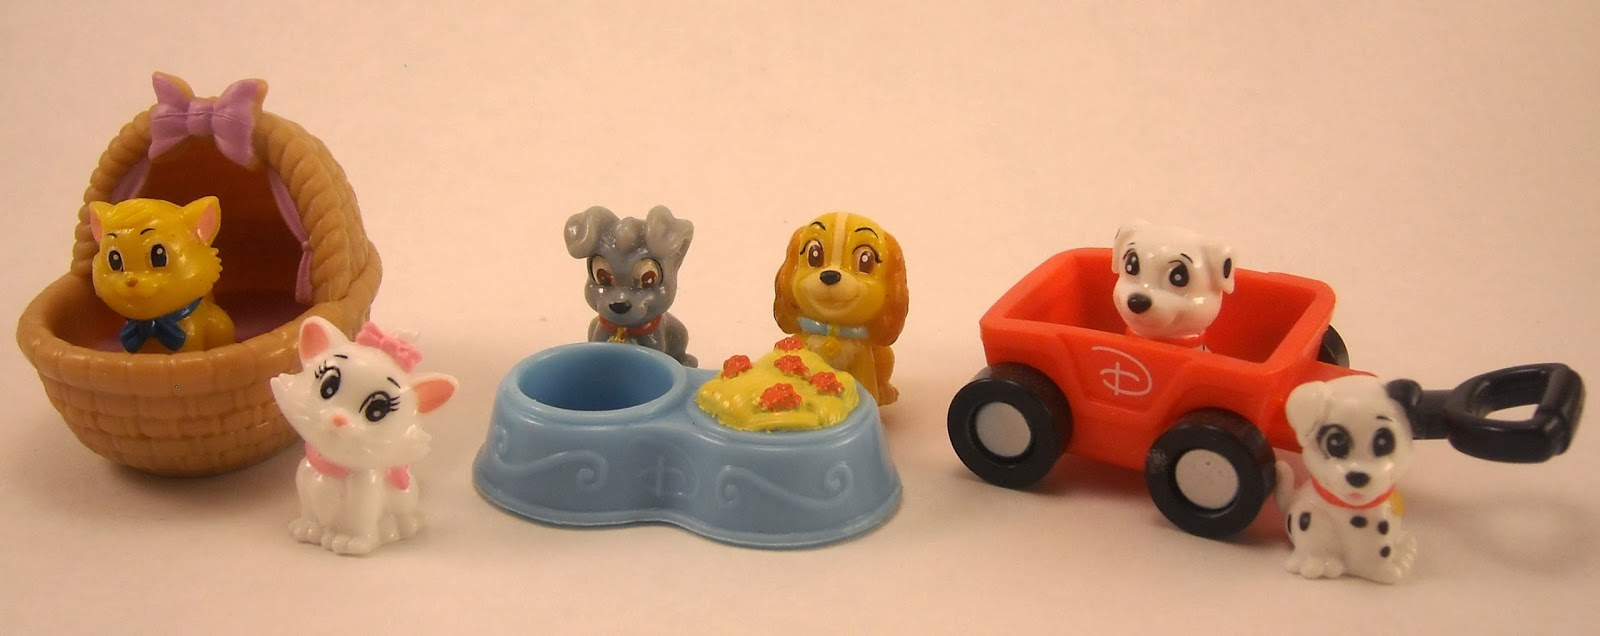 Squishy Collection Blog : It s a Toy Blog: Tiny, Squishy Squinkies